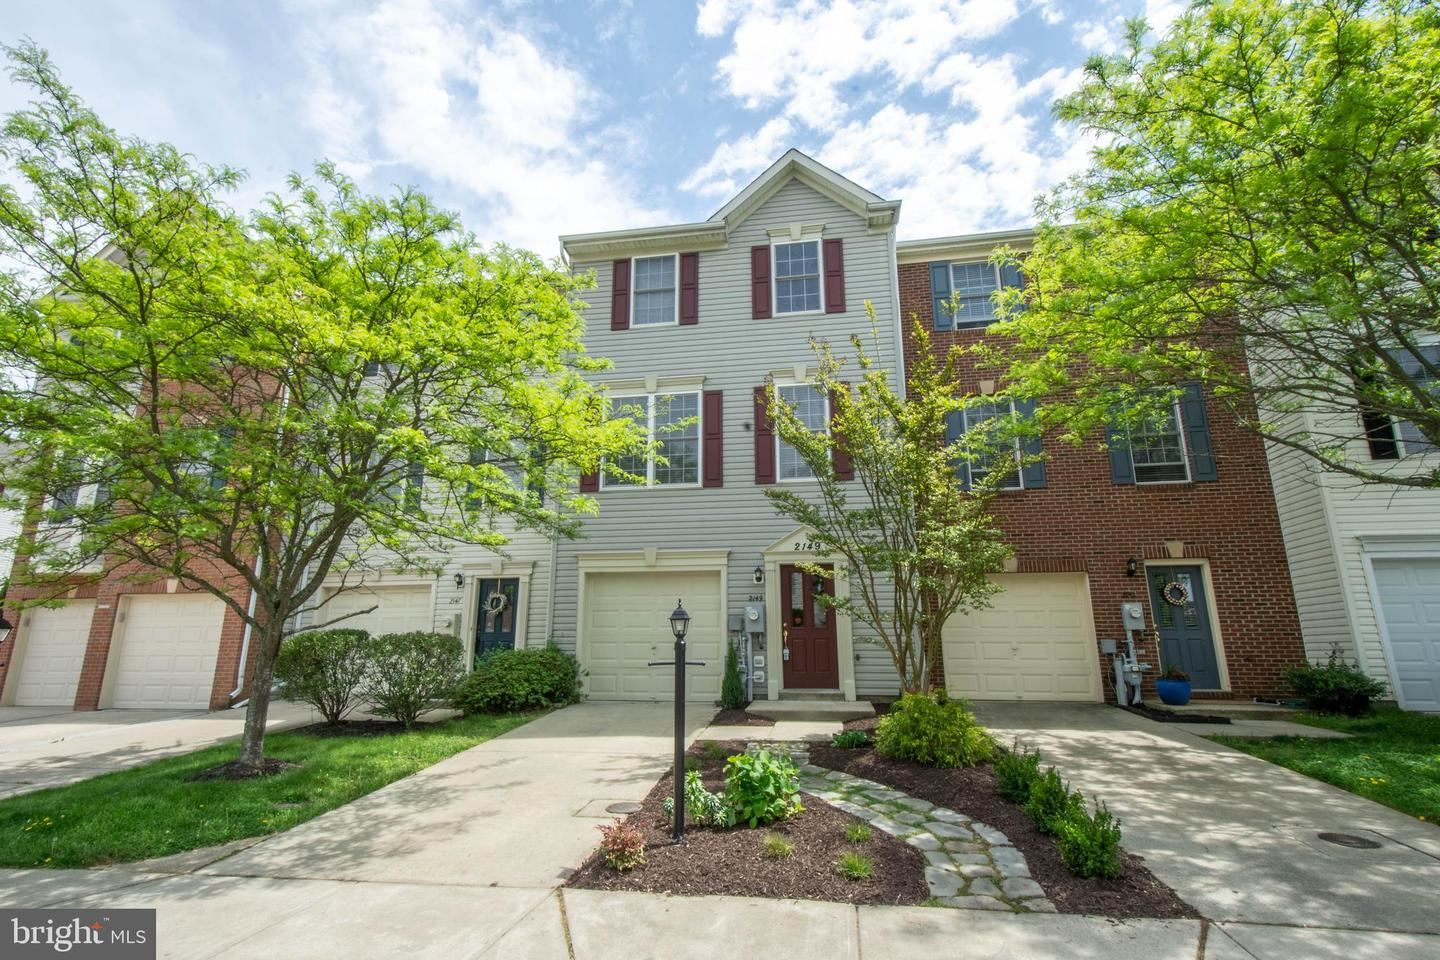 2149 MILLHAVEN DR #14-149, Edgewater, MD 21037 - MLS#: MDAA466630